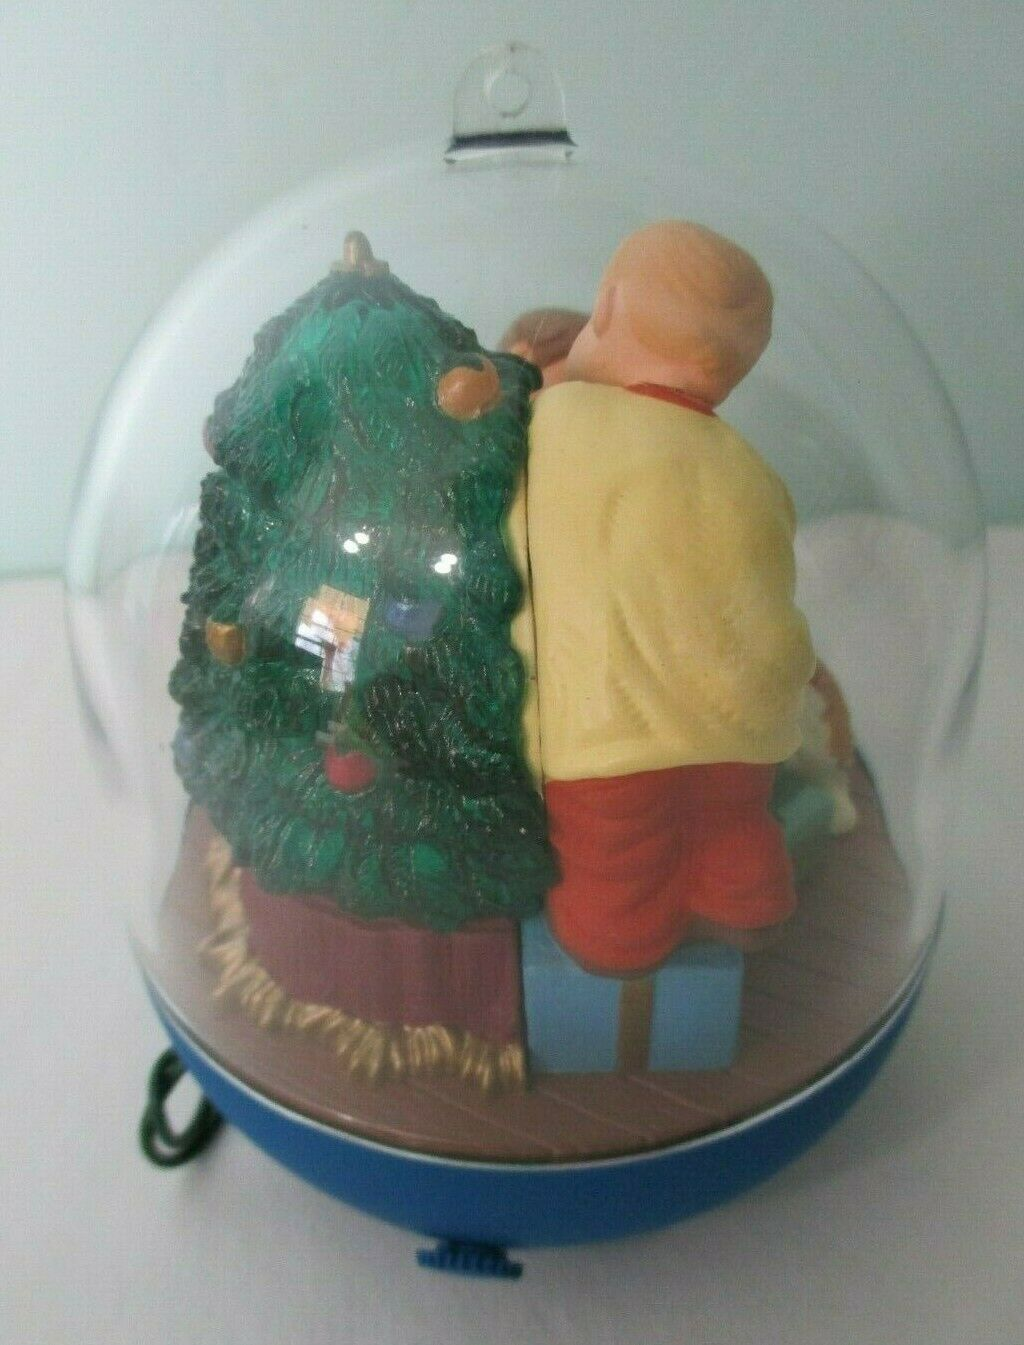 My First Hot Wheels Light and Motion Hallmark Magic Ornament 1995 Gently Used image 4